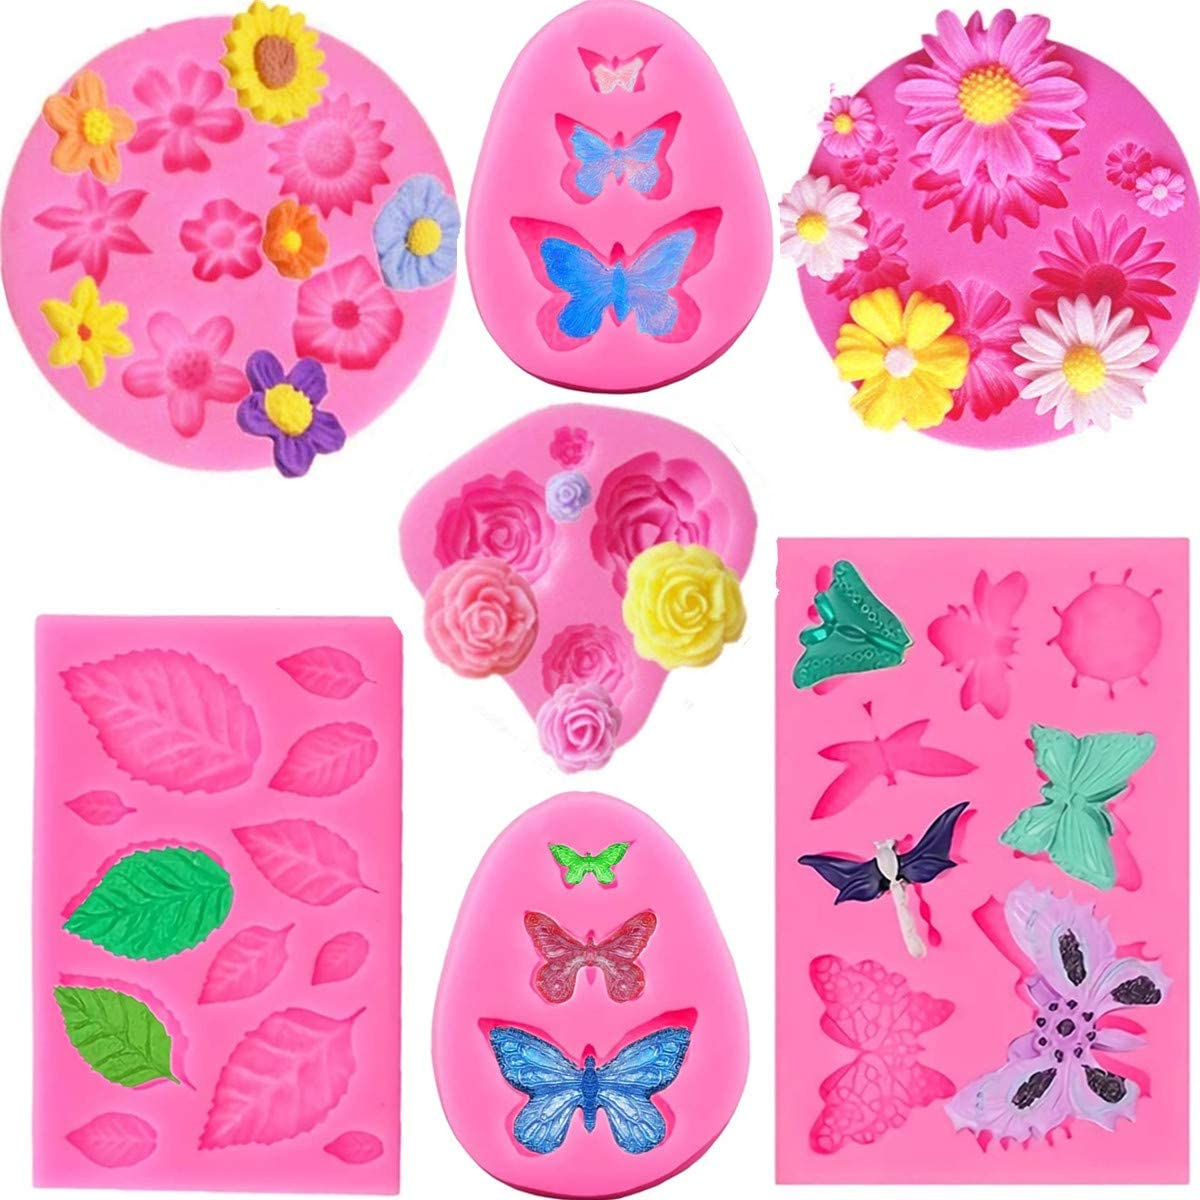 FIRETREESILVERFLOWER Silicone Boston Mall Max 84% OFF Mould for Flower and Can Butterfly